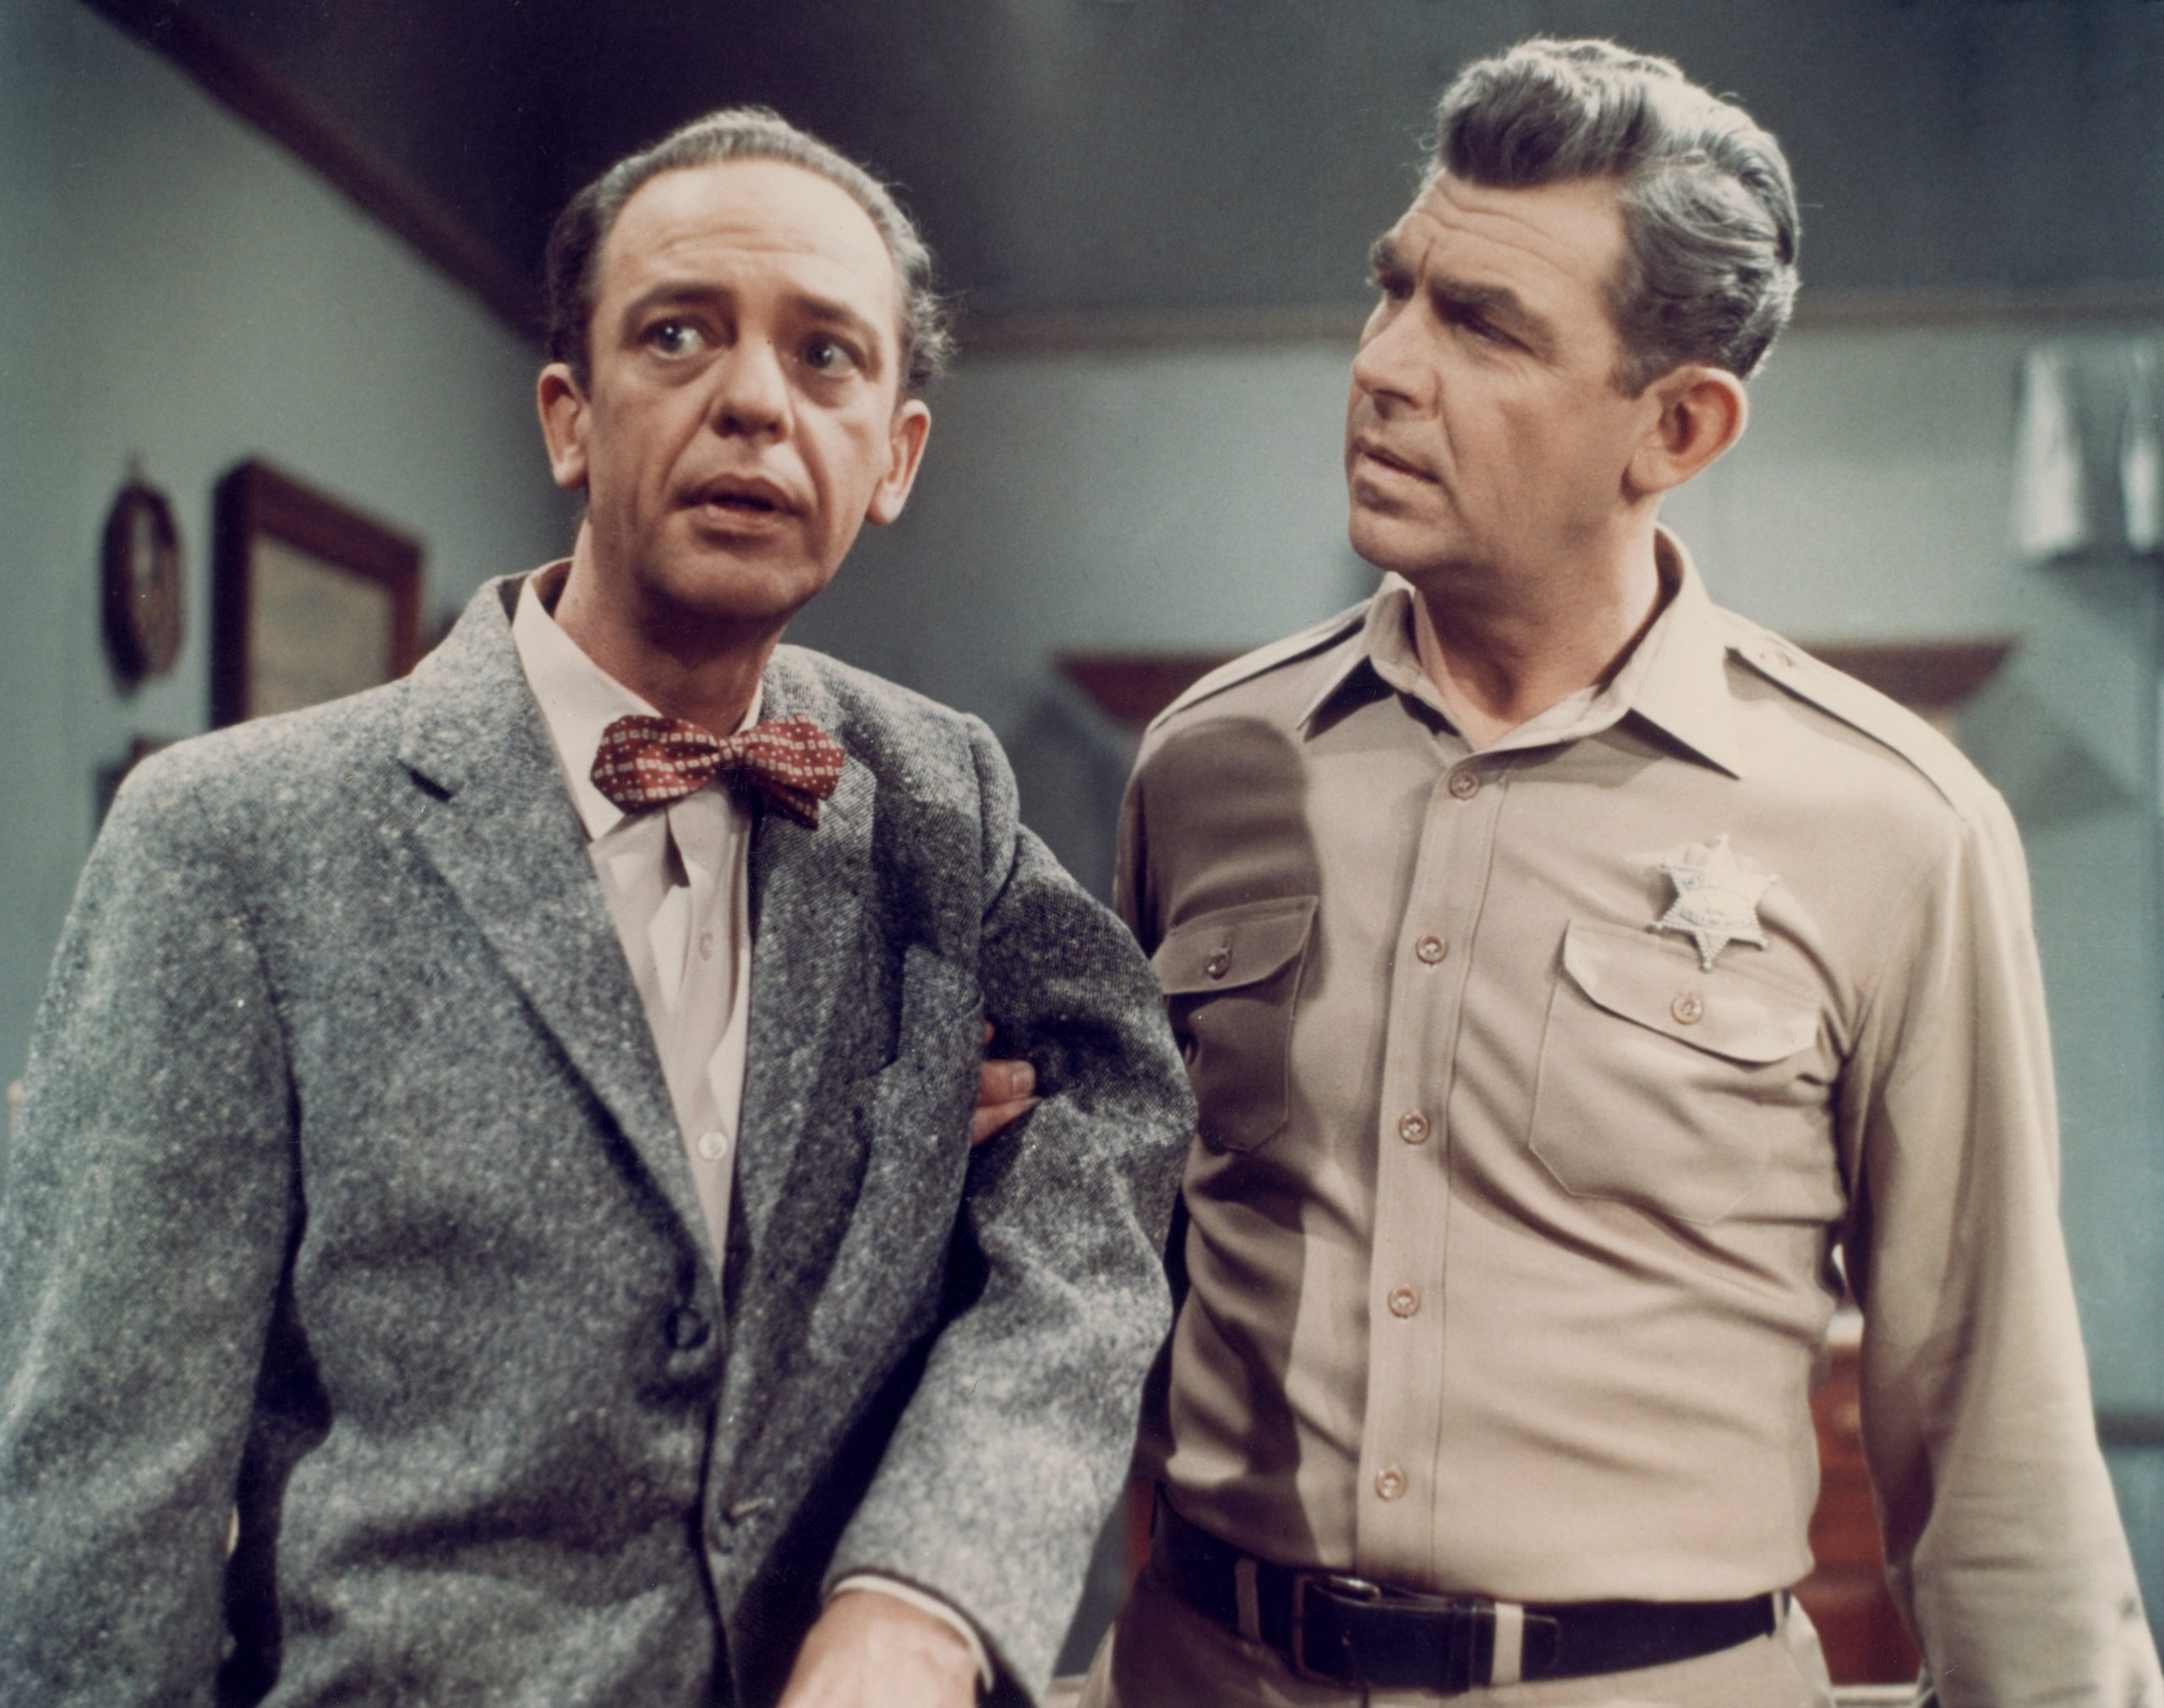 Don Knotts (1924 - 2006) as Deputy Barney Fife and Andy Griffith (right) as Sheriff Andy Taylor in a scene from the television series 'The Andy Griffith Show', circa 1965.